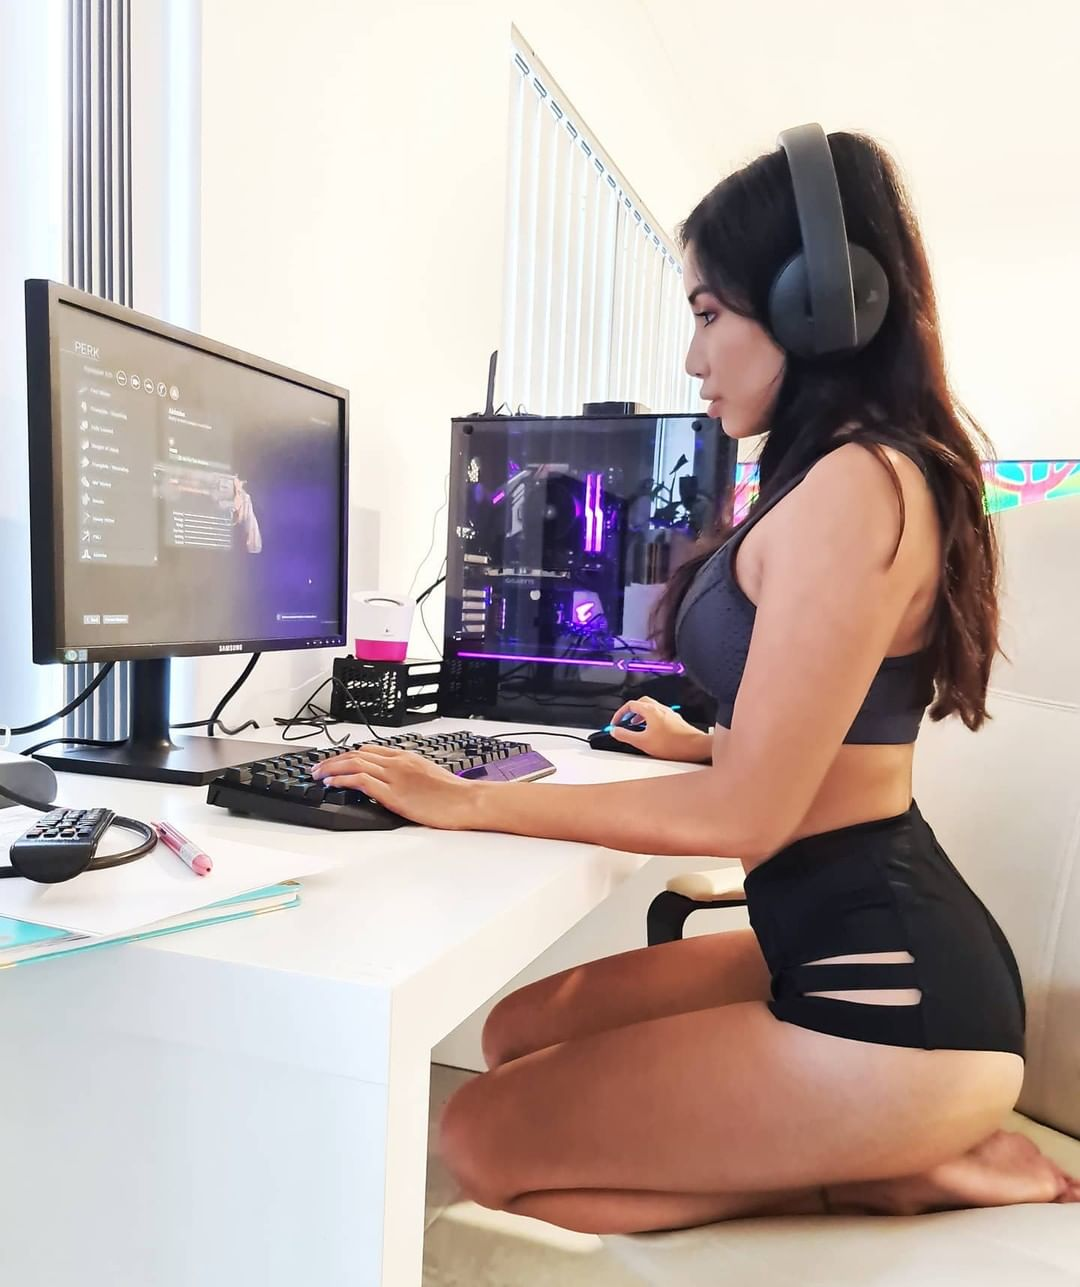 CHICAS GAMERS: ME GUSTO SU PC